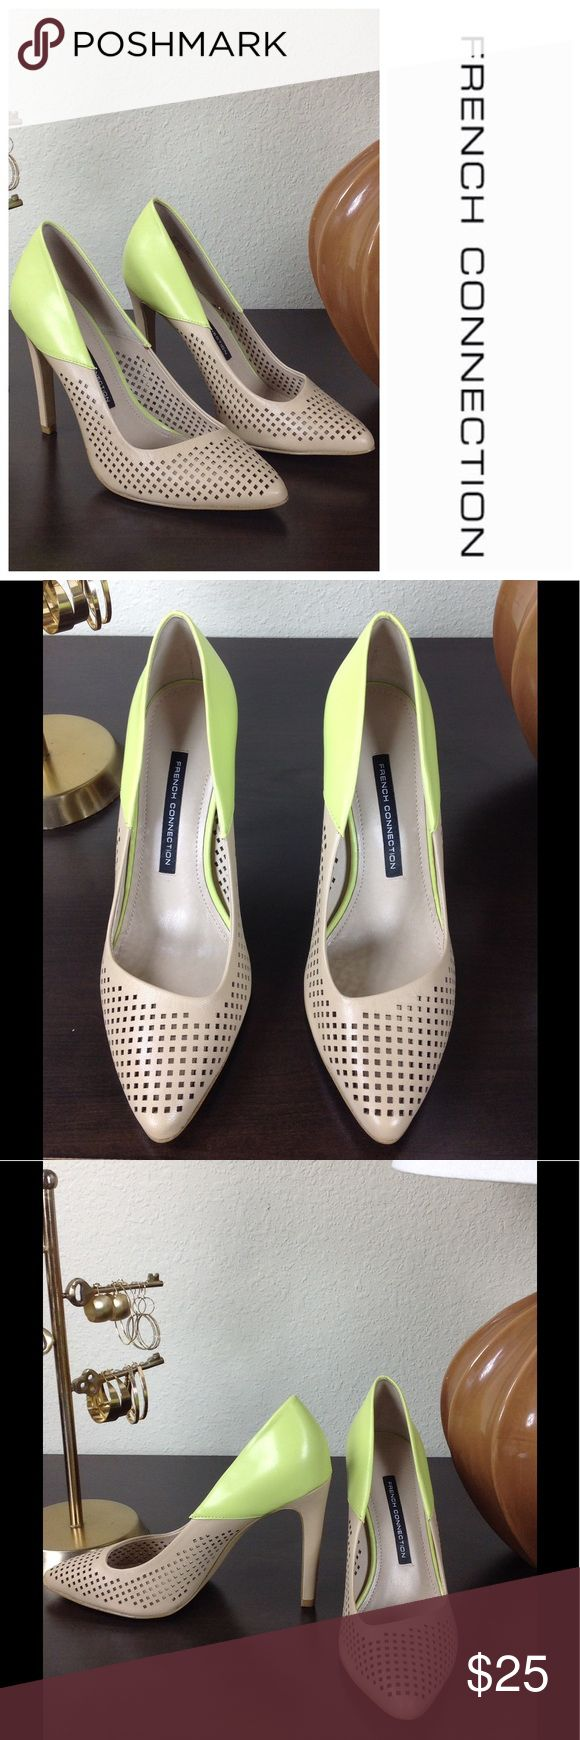 FRENCH CONNECTION Size 8/38 Gorgeous French Connection nude and lime green pumps with letter cut out detail. Worn only a few times. Excellent condition! French Connection Shoes Heels